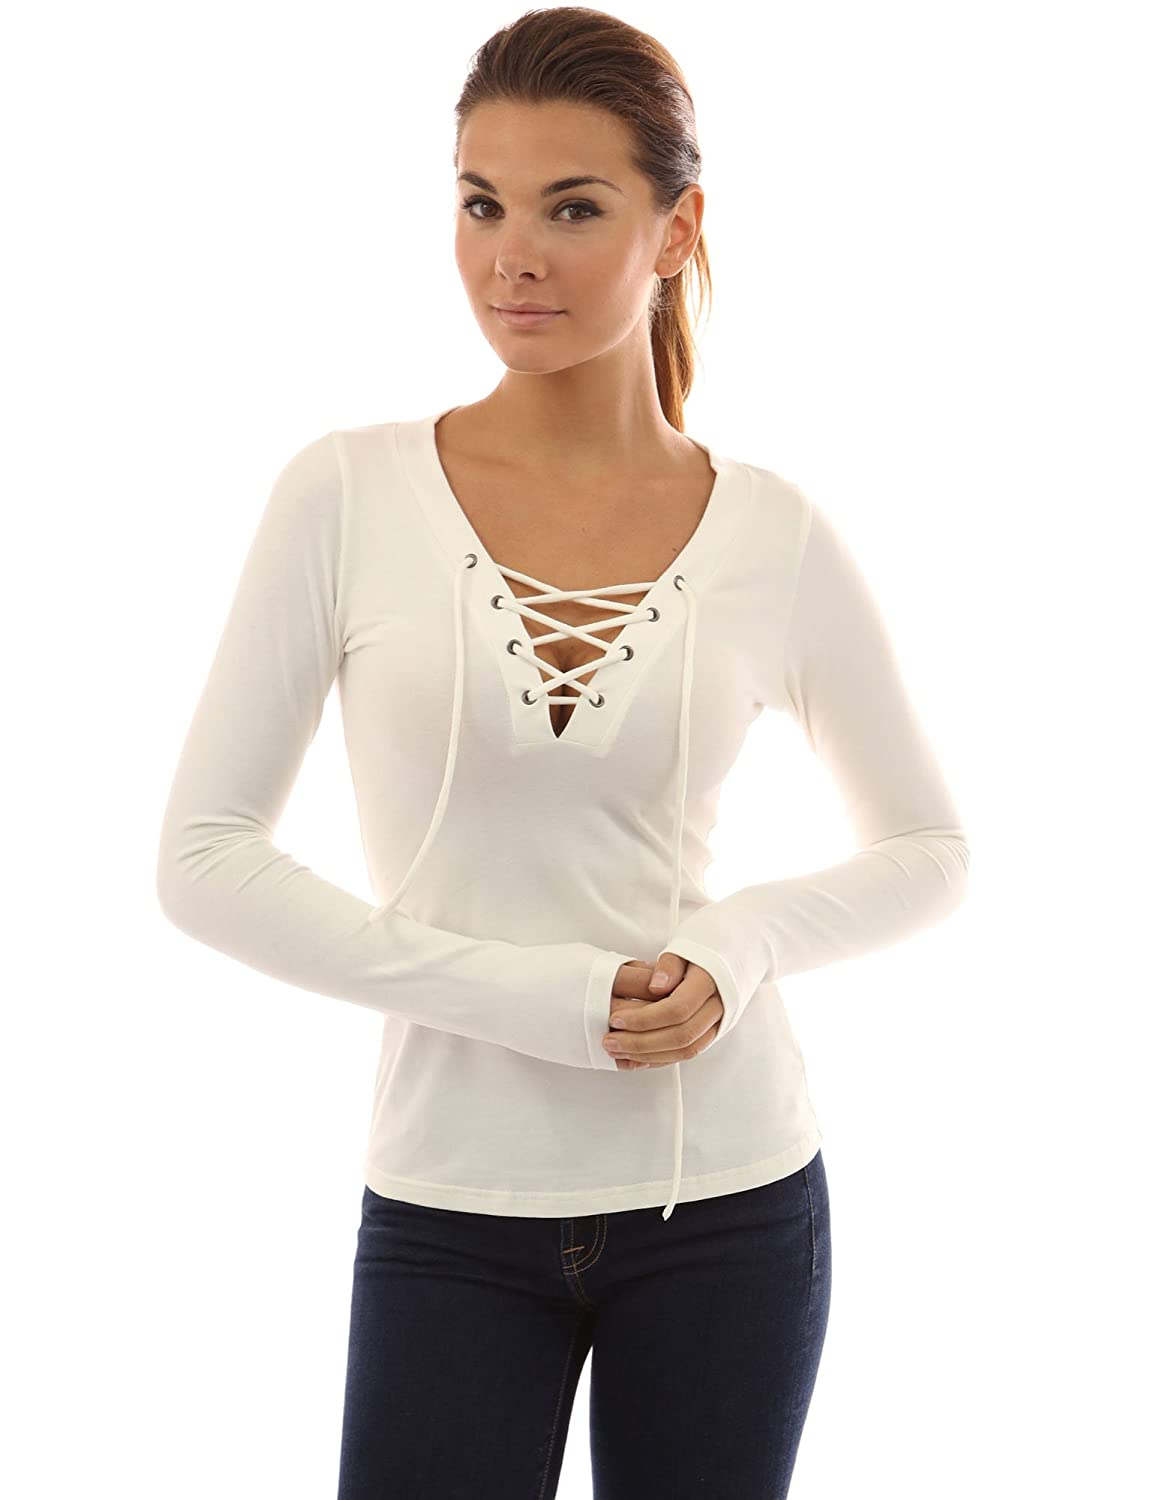 38fc001b4ae PattyBoutik Women's V Neck Lace Up Top at Amazon Women's Clothing store:  Patty Boutique